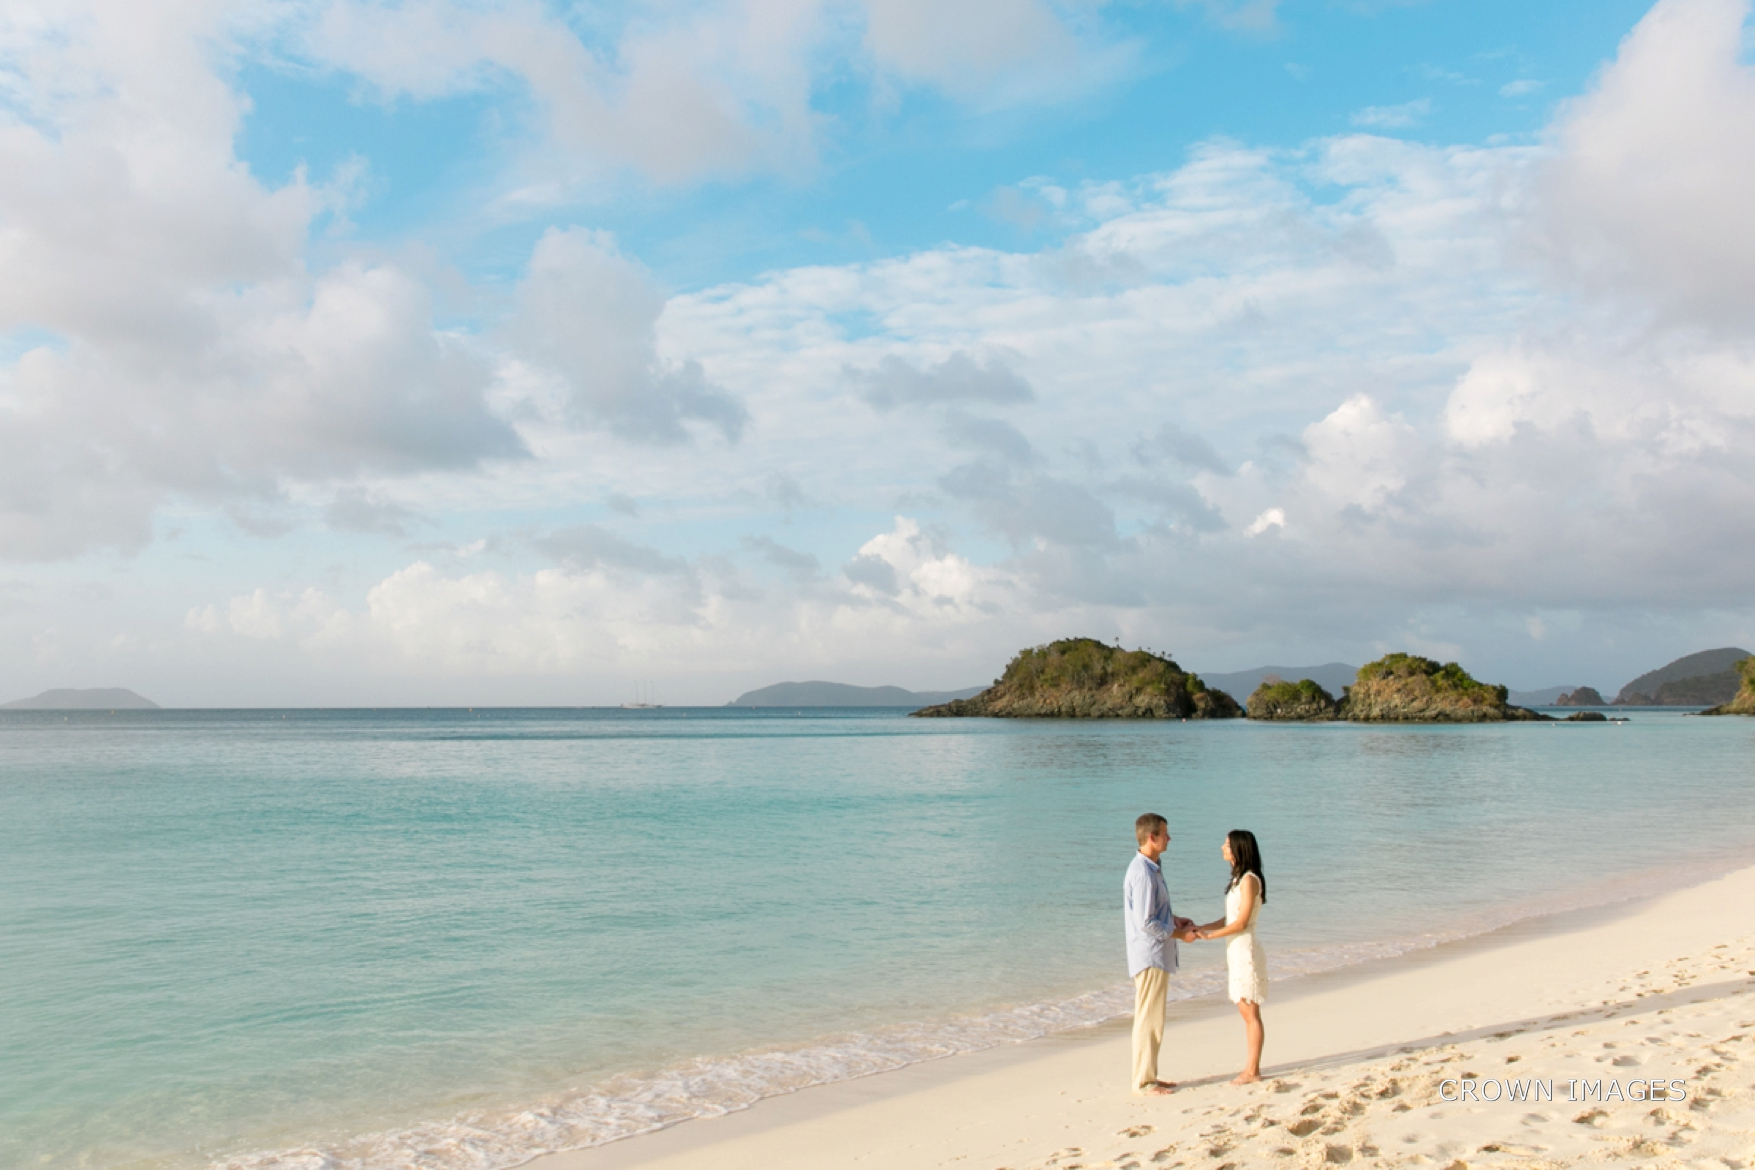 engagement_photos_virgin_islands_crown_images_0632.jpg